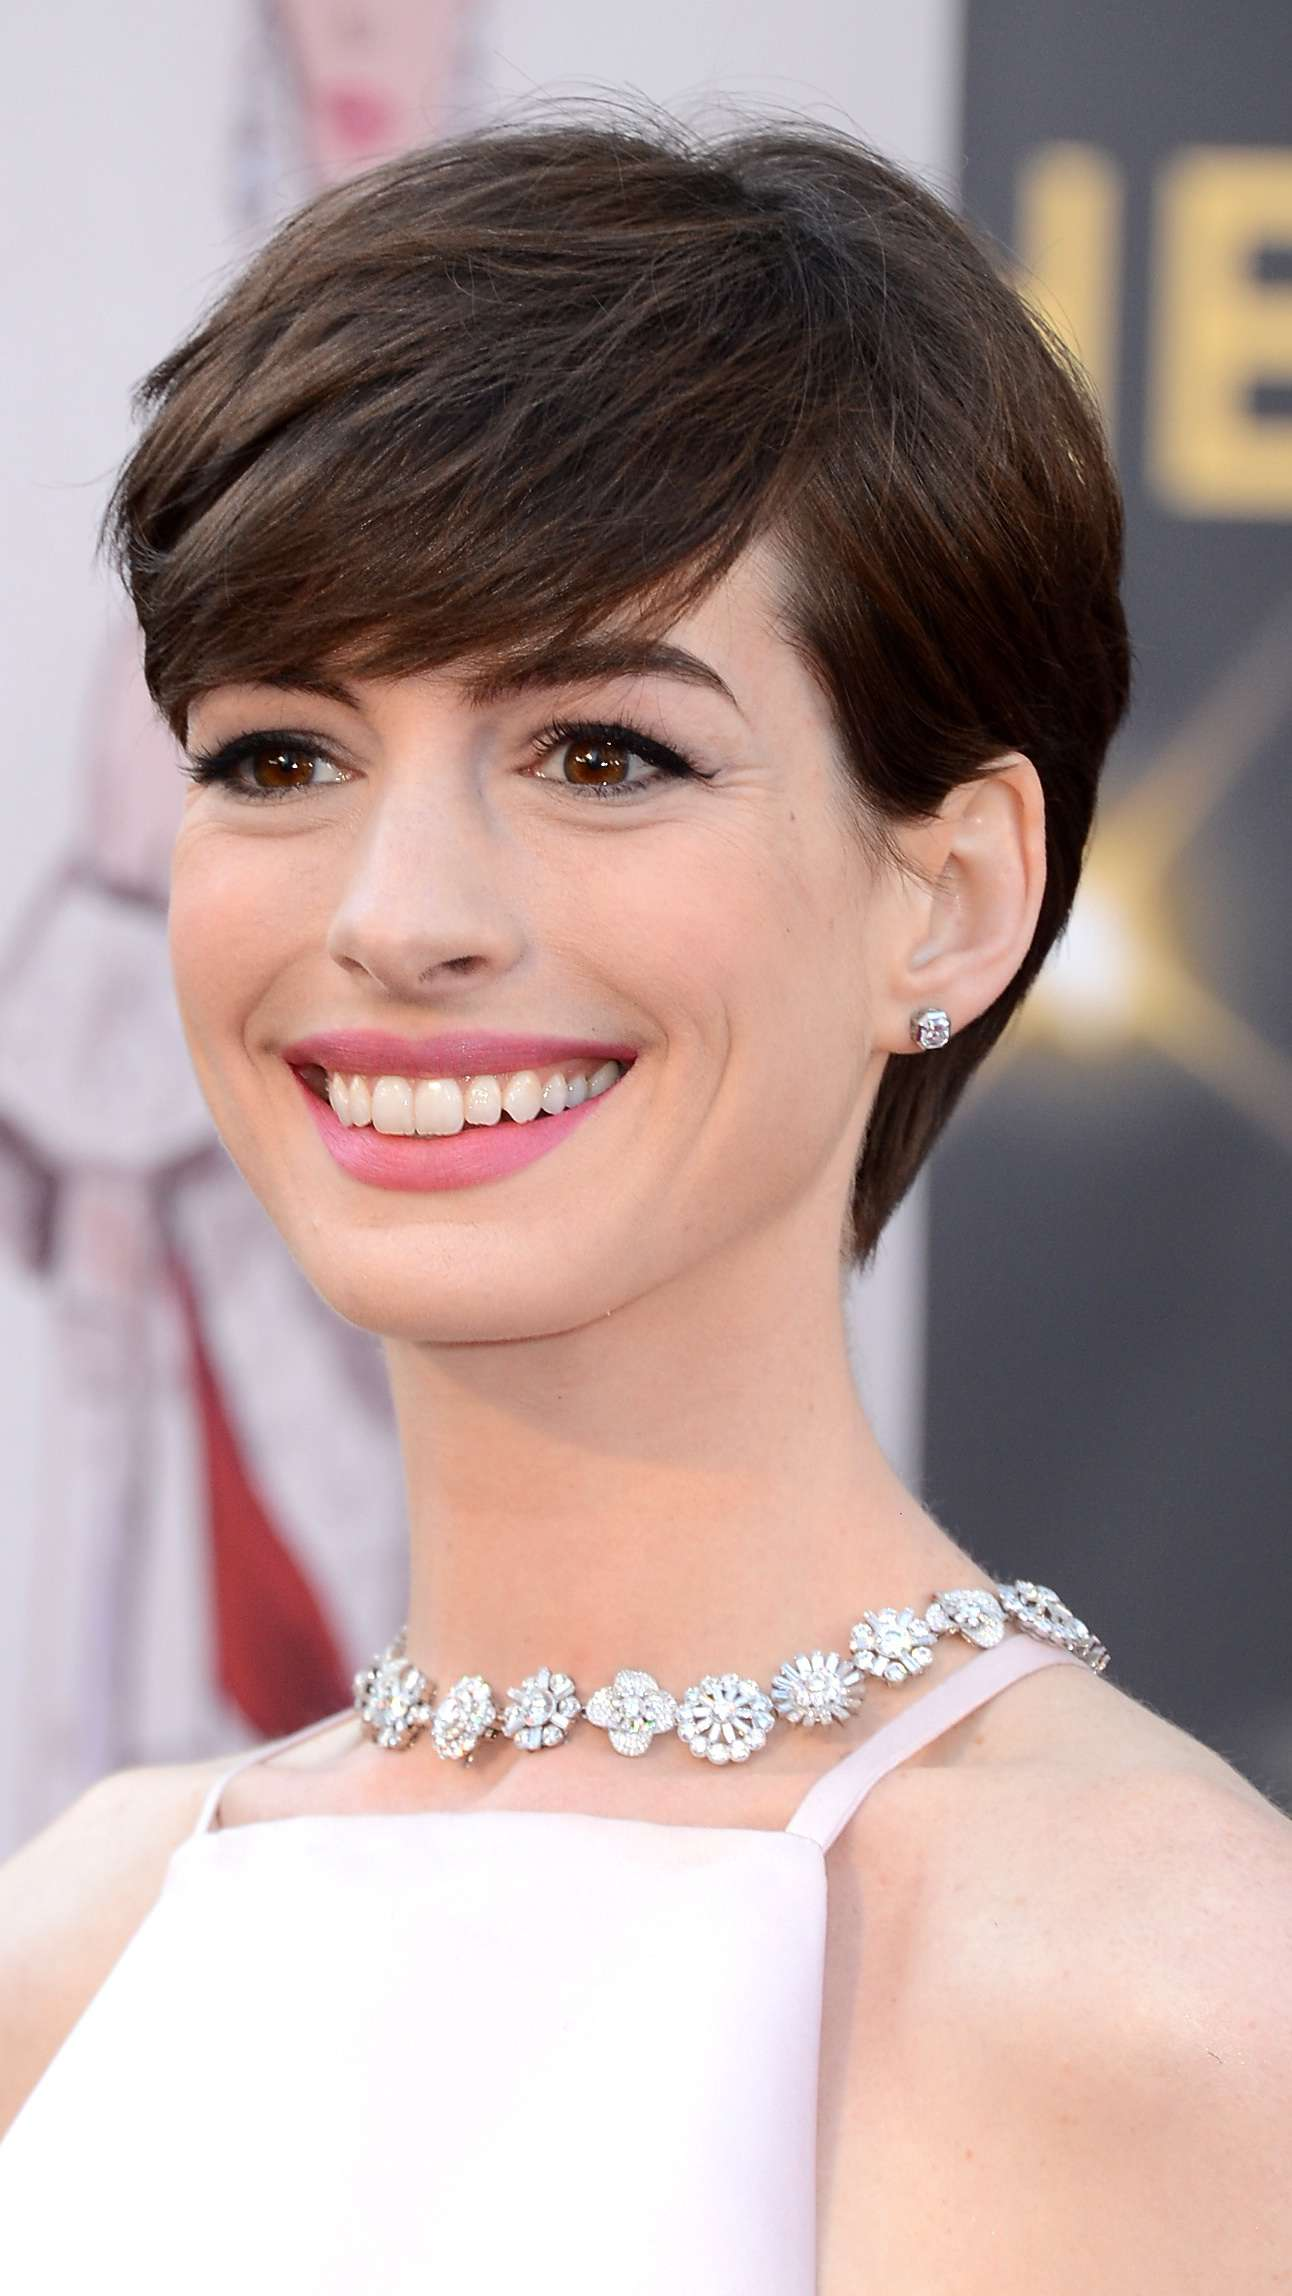 22 Inspiring Short Haircuts For Every Face Shape